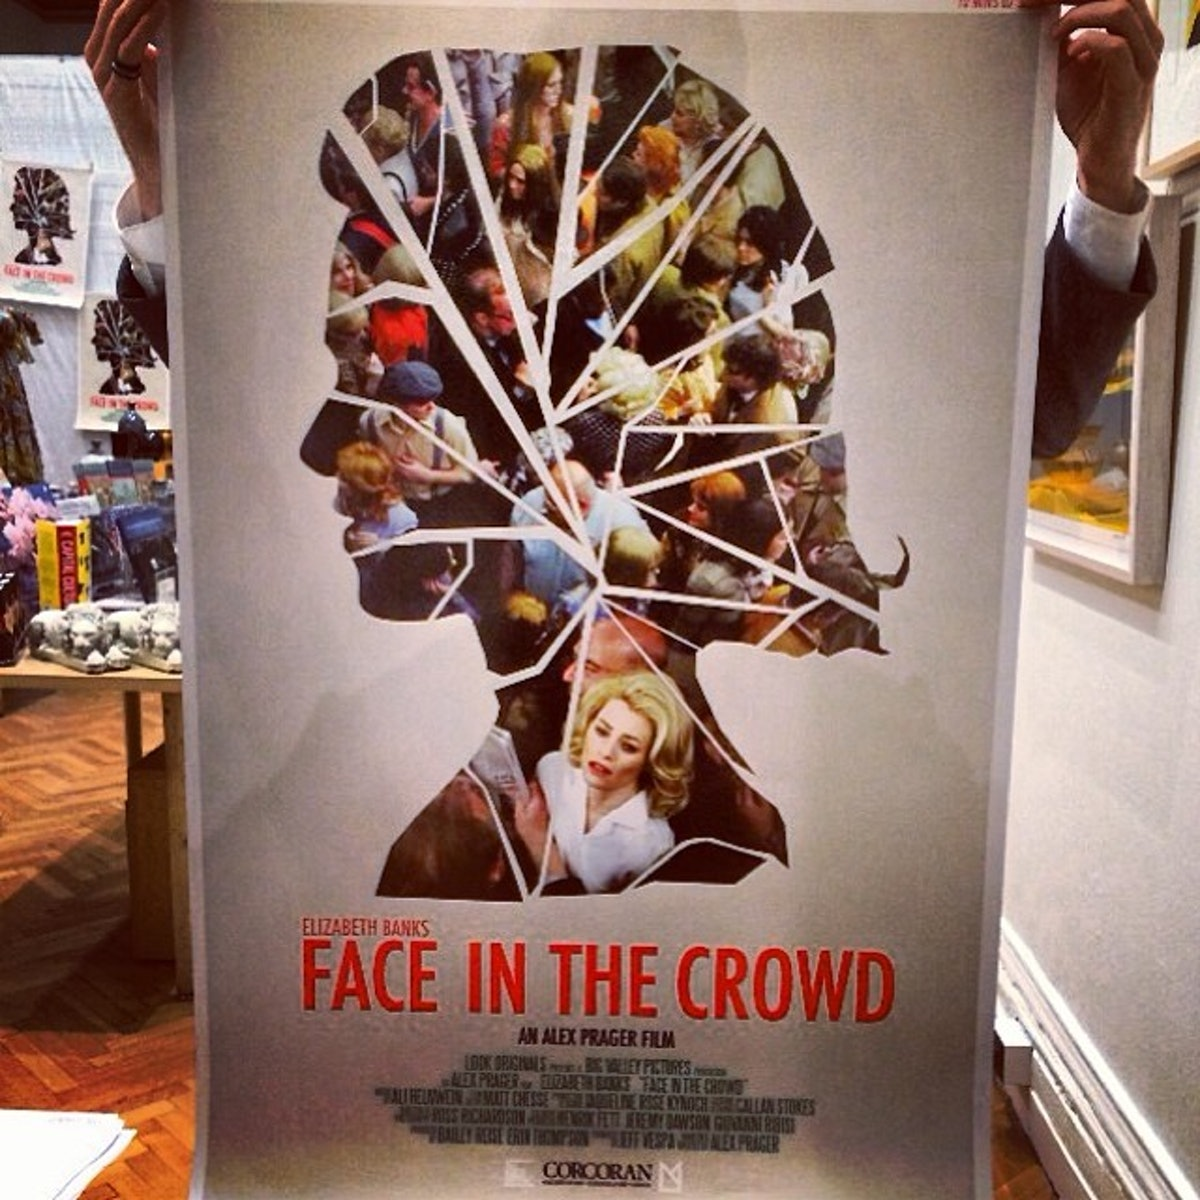 The 'Face in the Crowd' poster design by Mustaa Luntaa at the Corcoran Gallery